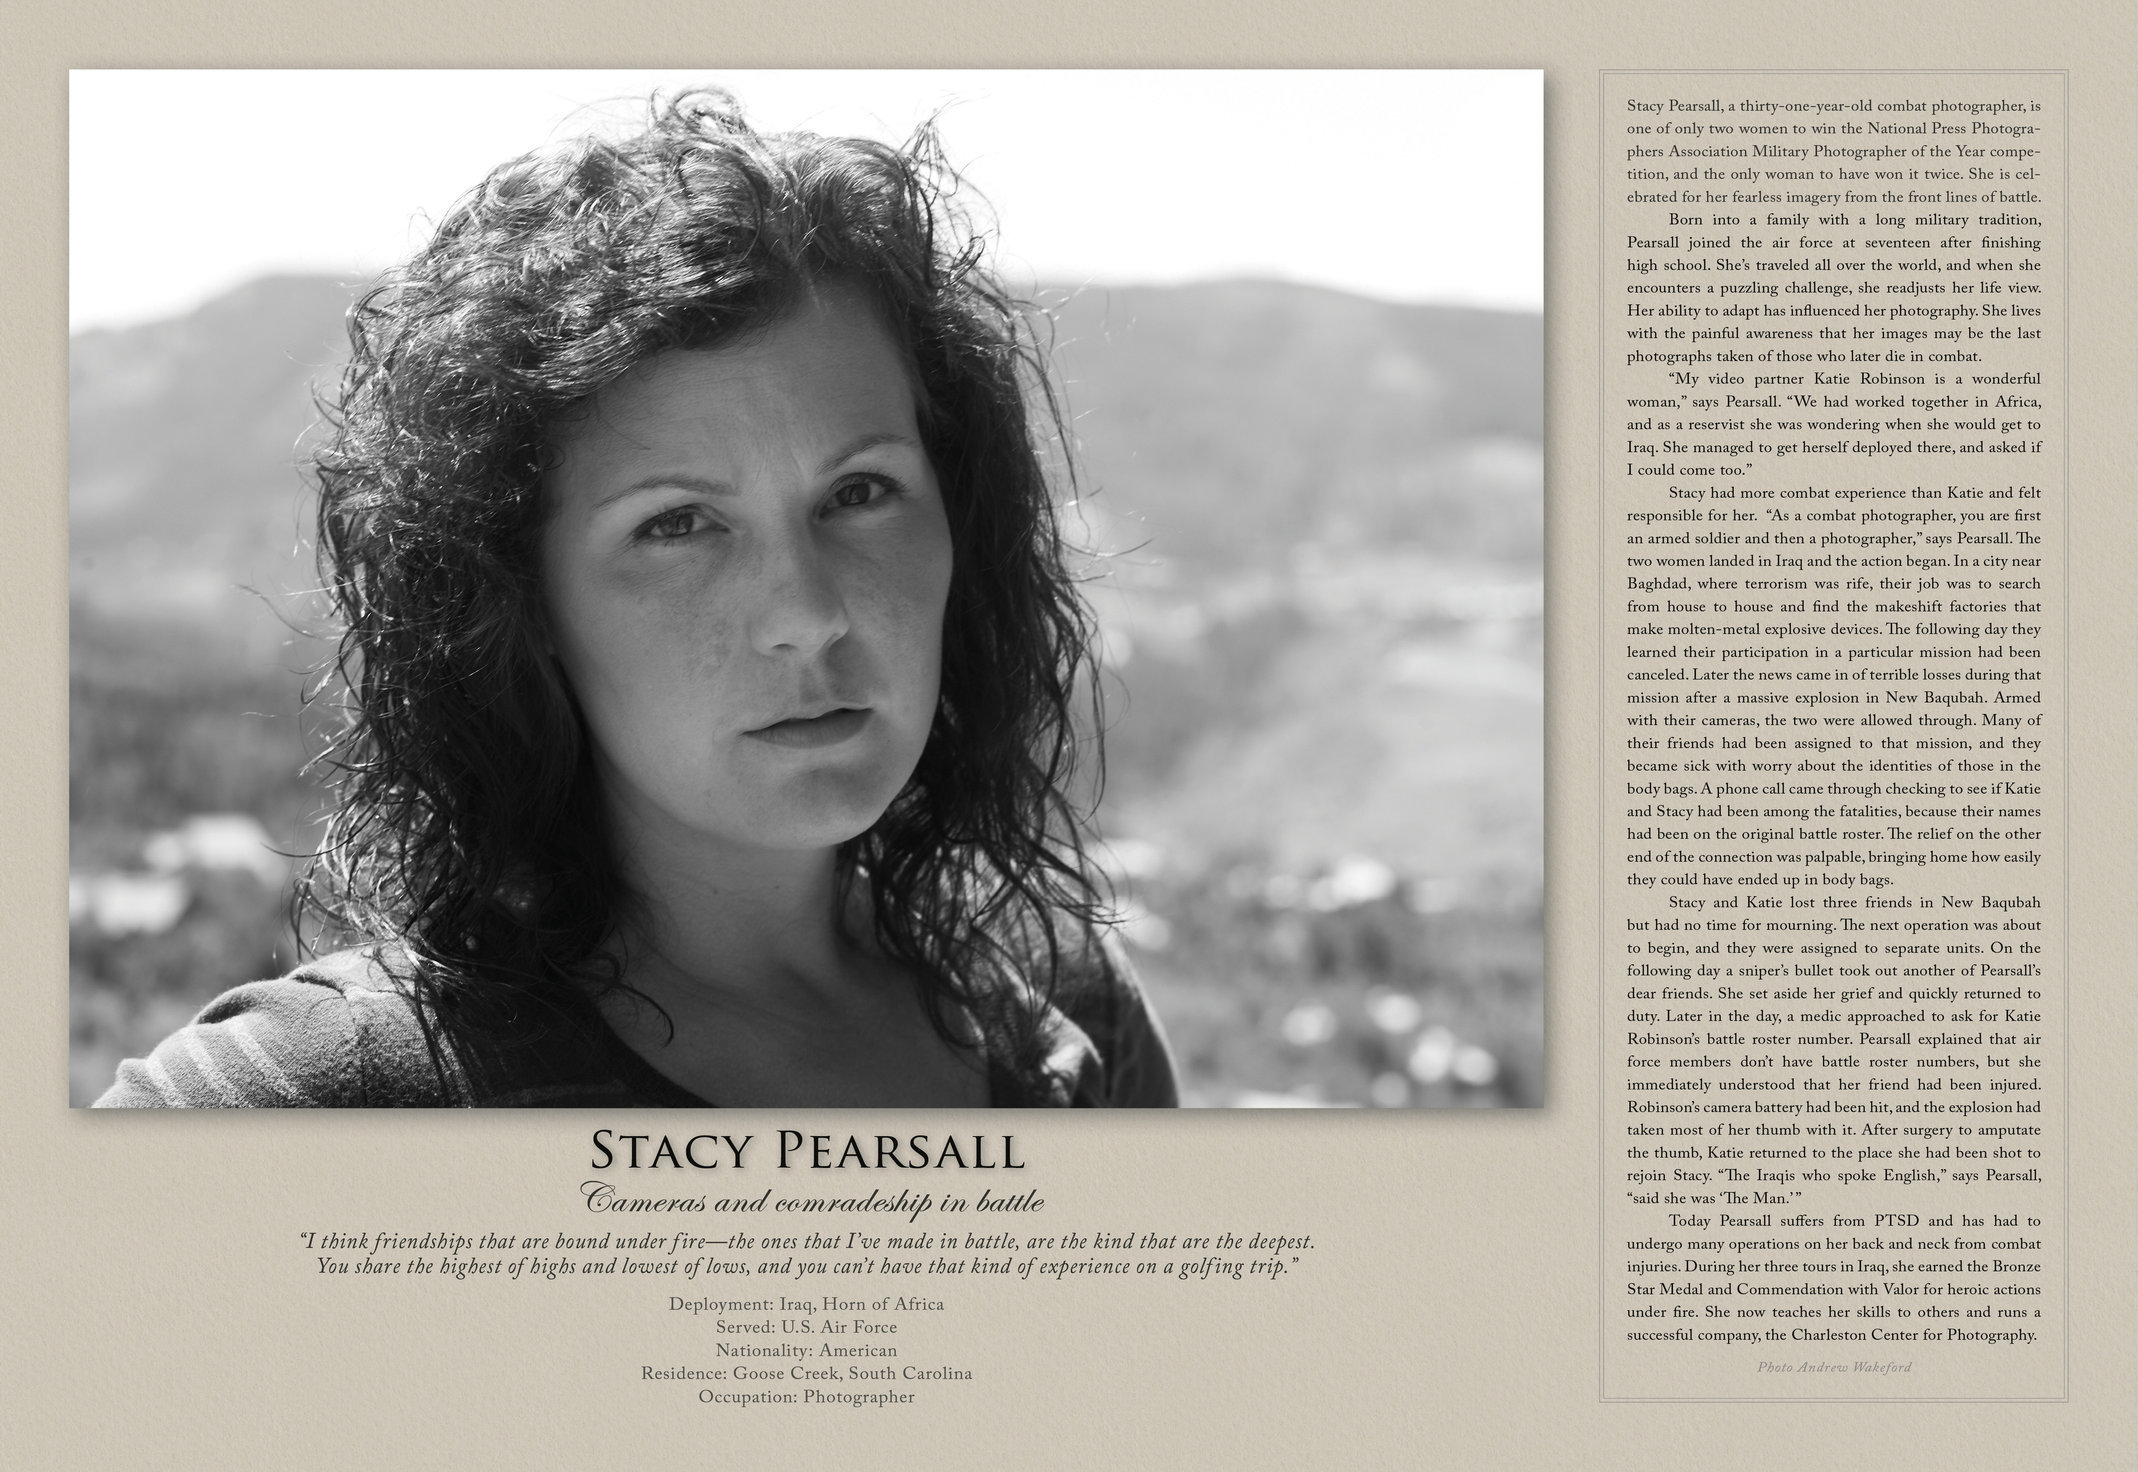 Stacy-Pearsall.jpg